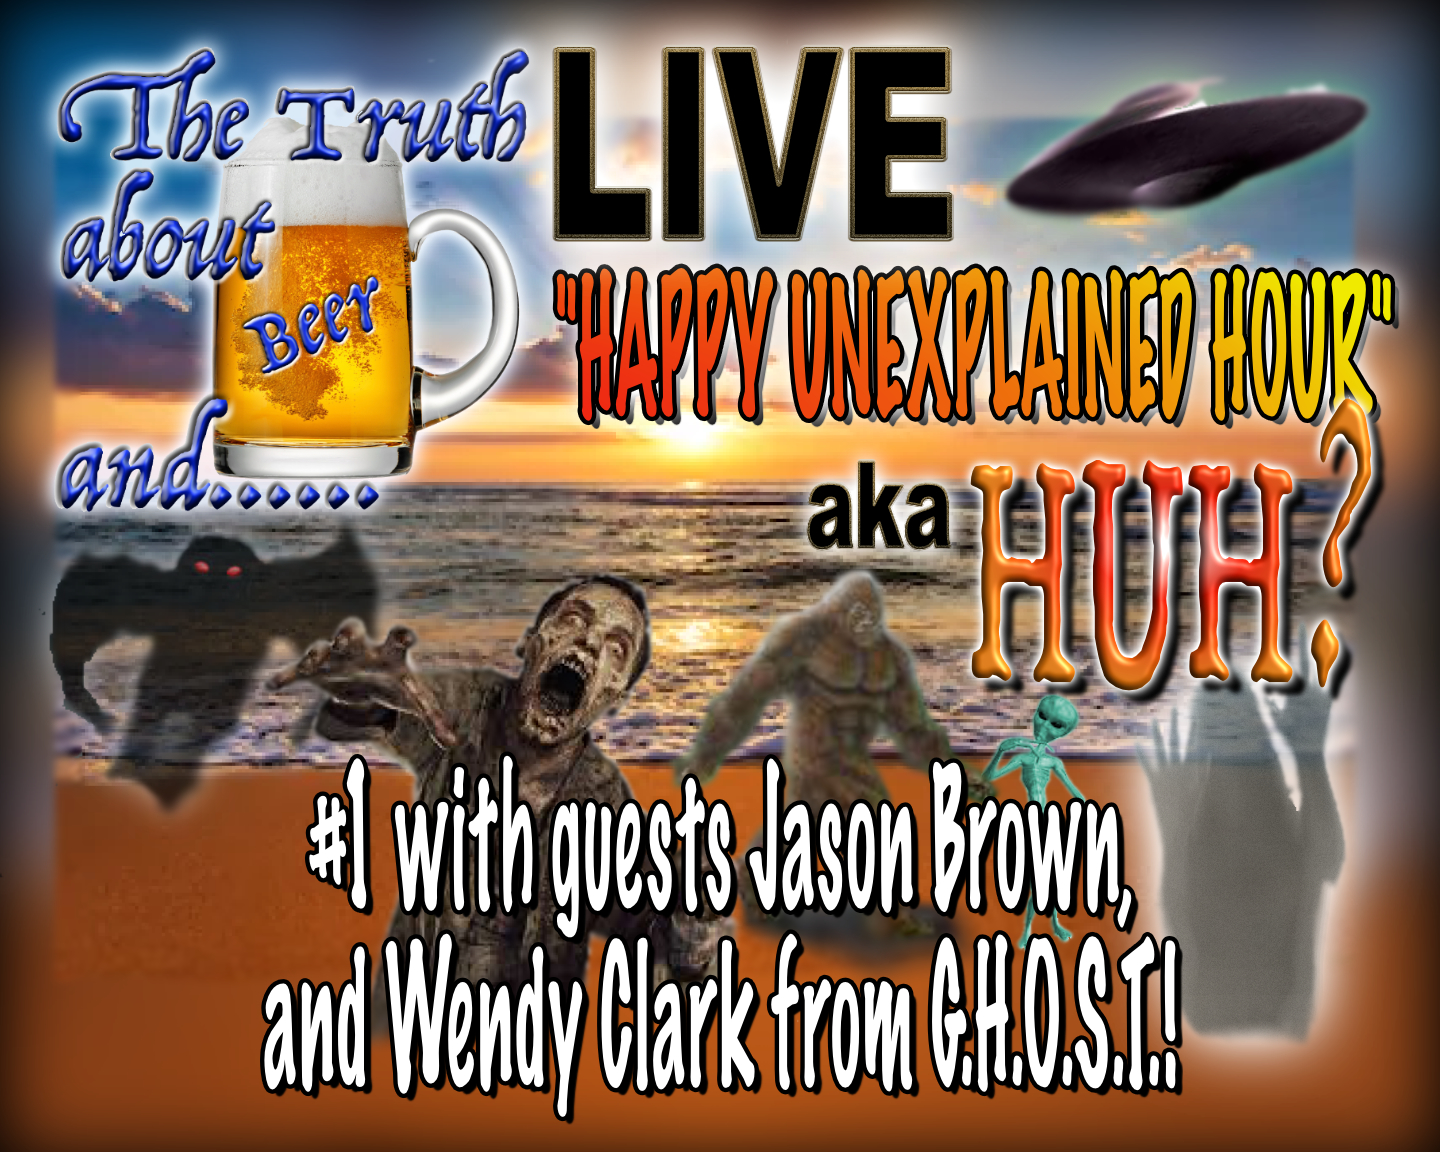 HUH? #1 5-30-2020 with special guest Jason Brown and Wendy Clark from GHOST